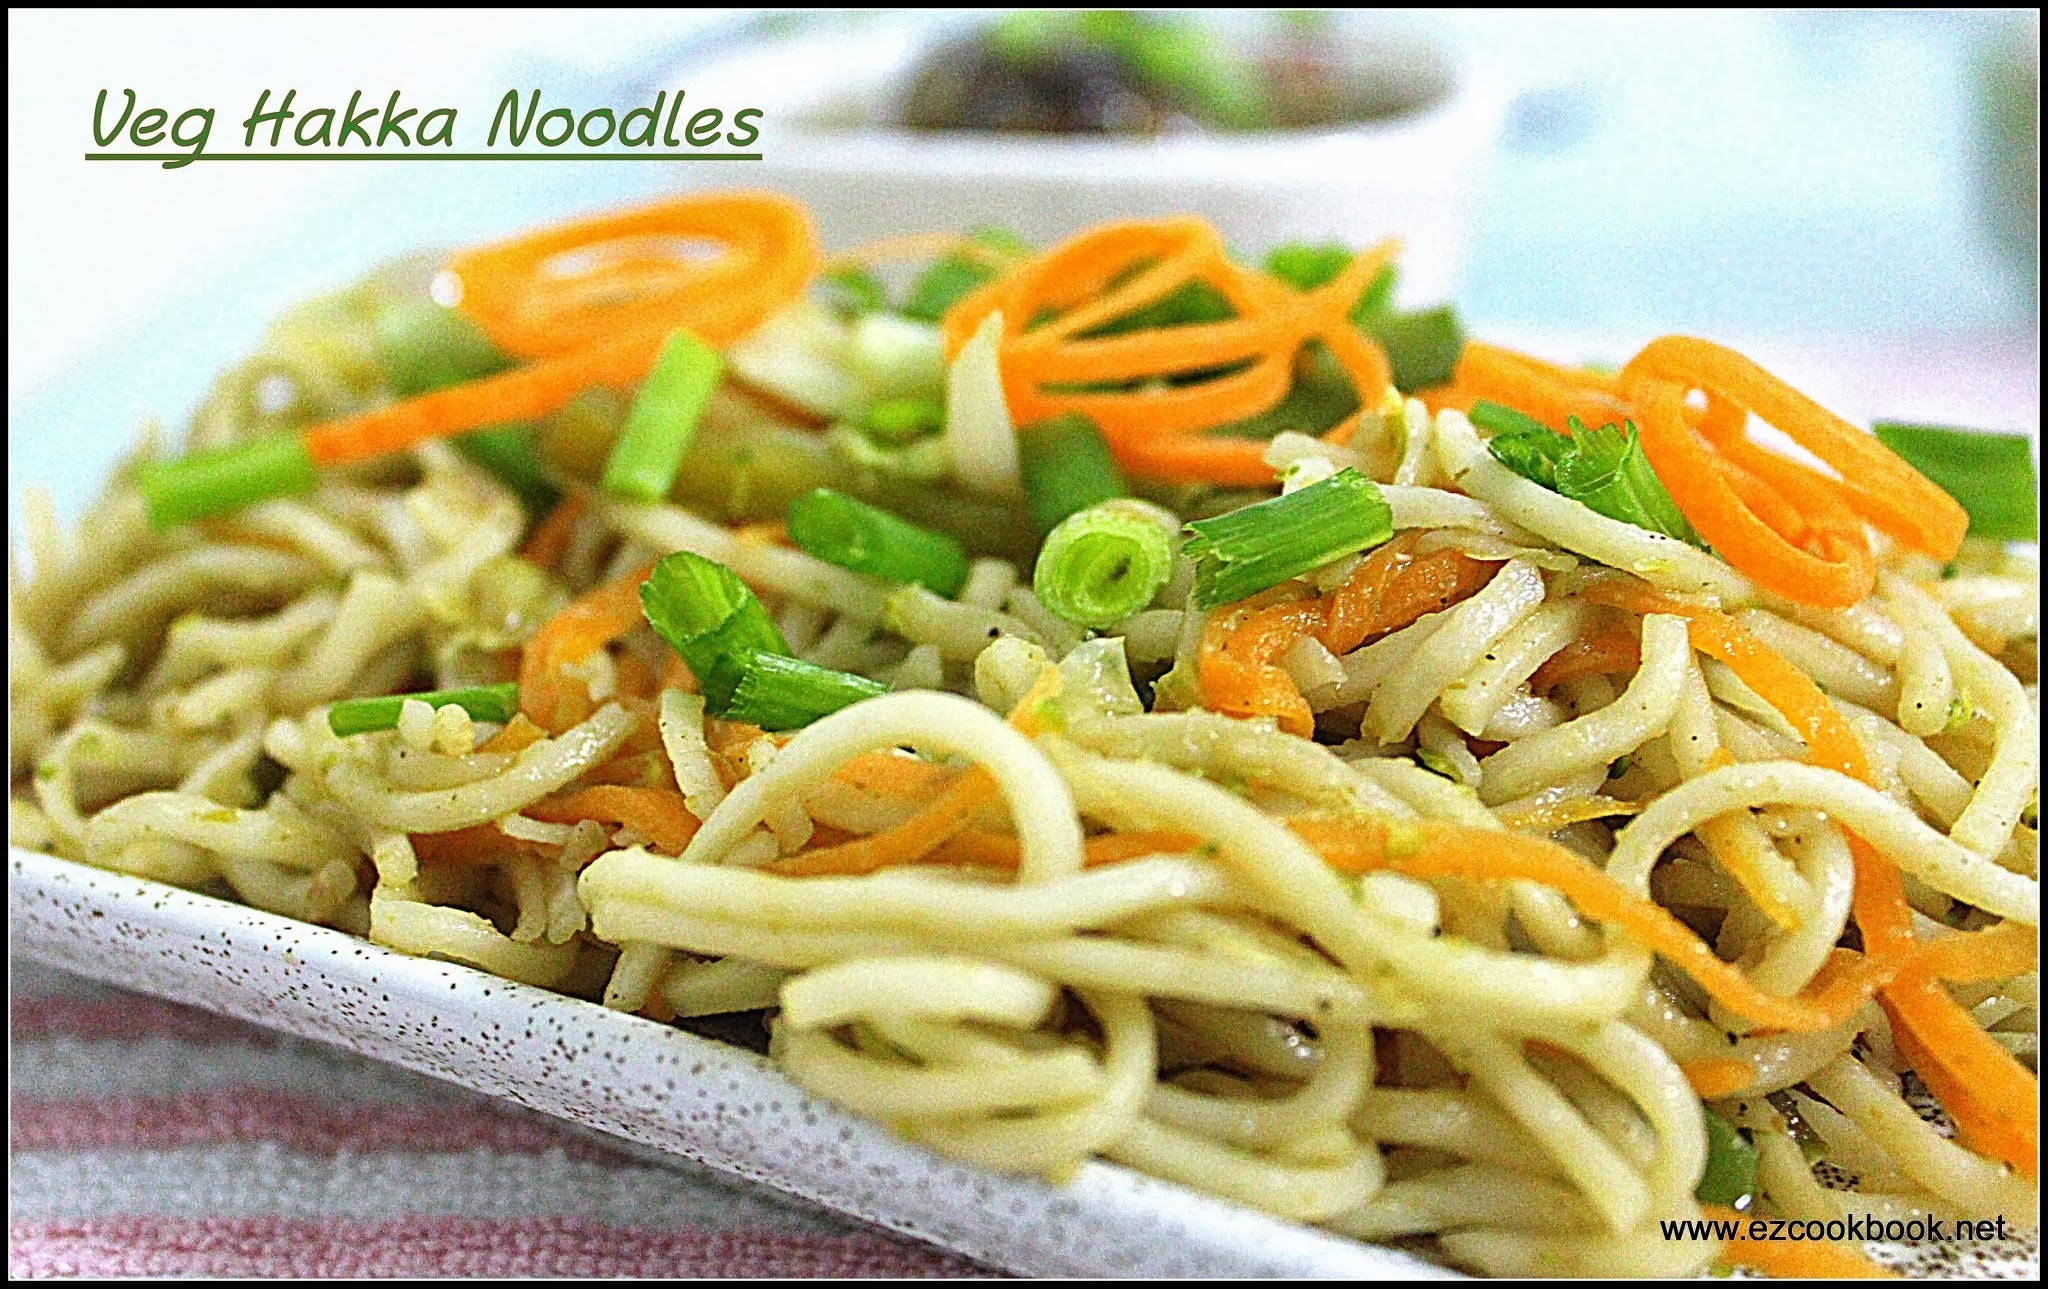 Veg Hakka Noodles Recipe | Ezcookbook